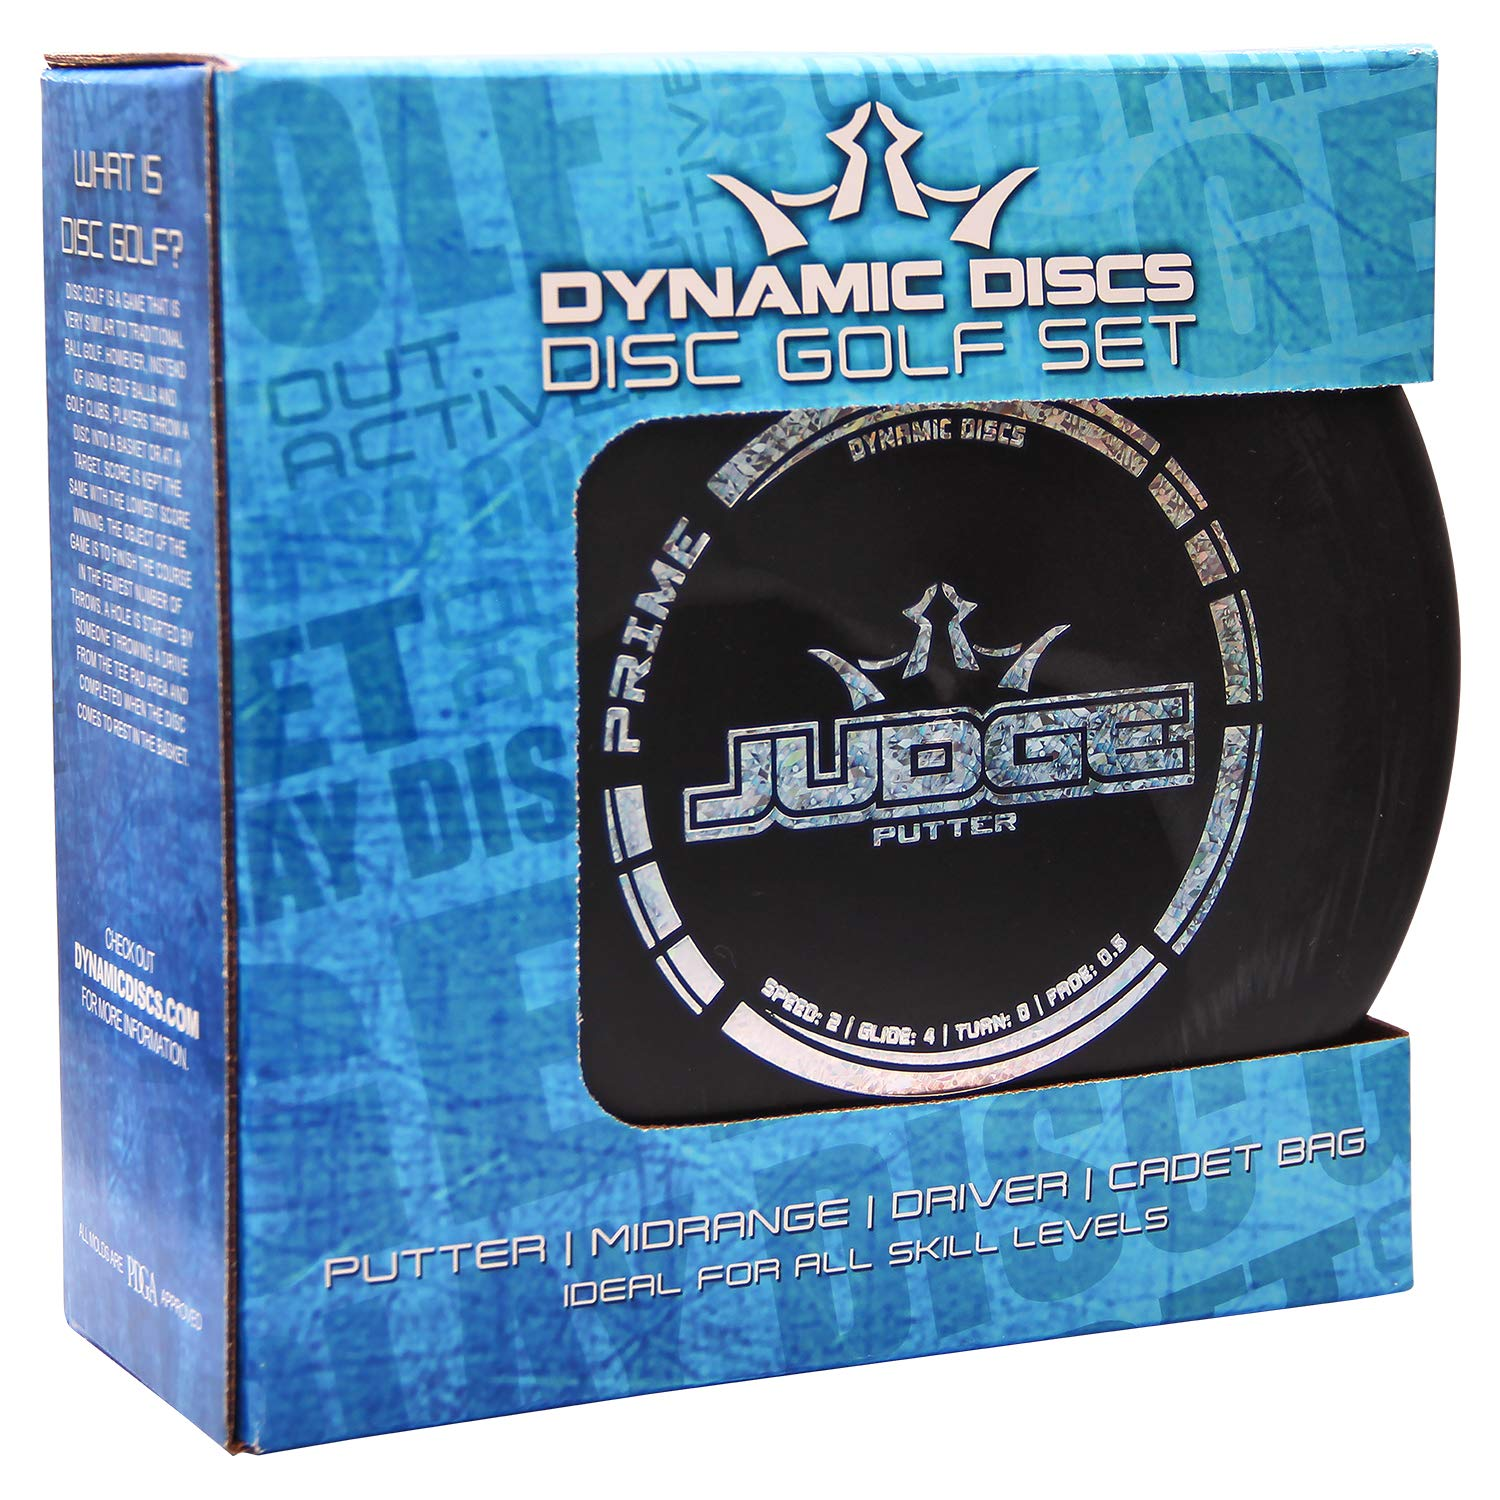 Dynamic Discs 3 Disc Starter Set with Cadet Disc Carrying Bag